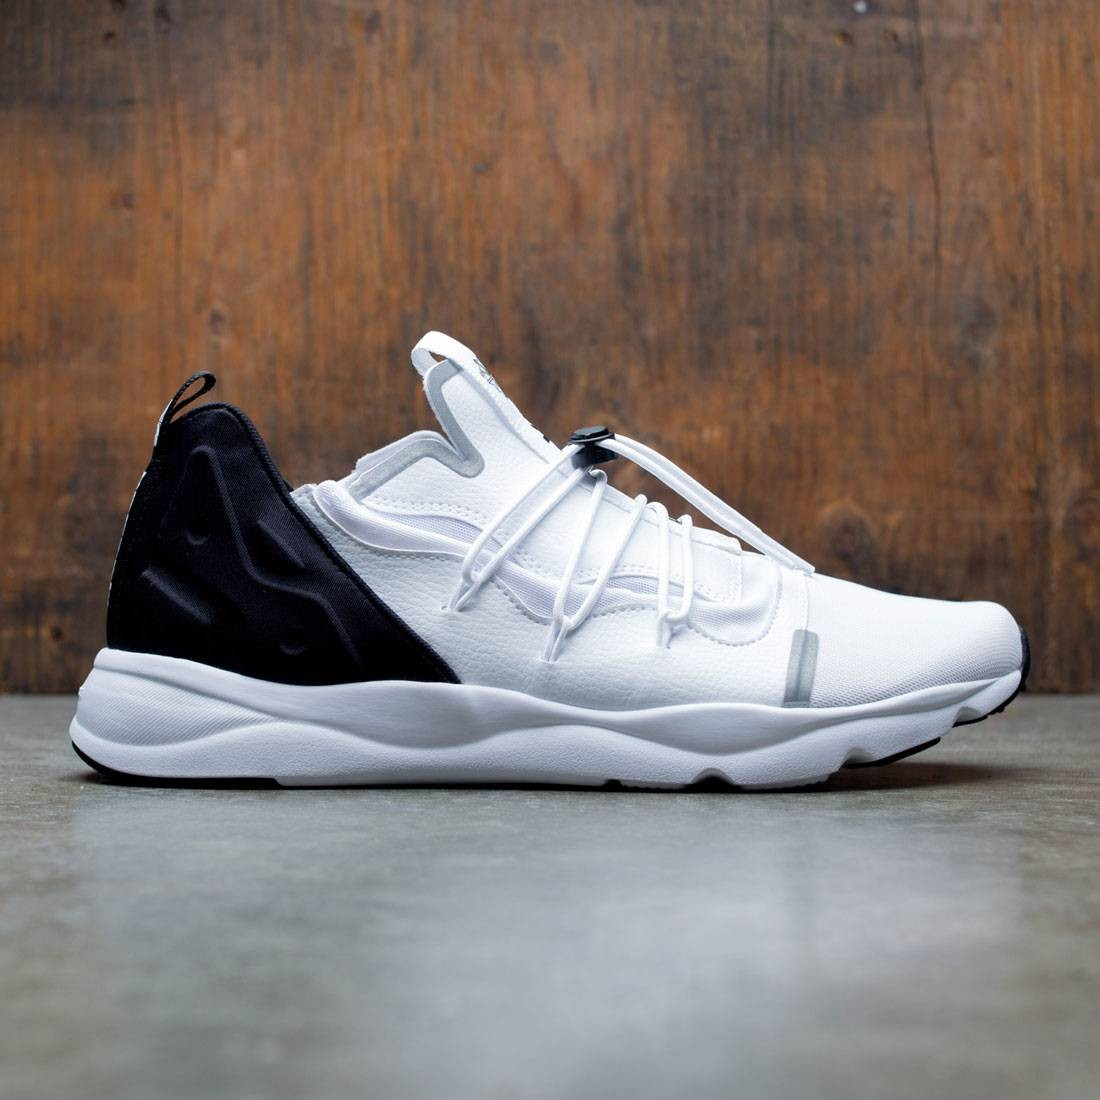 ac1425955da947 Reebok Men Furylite X white black